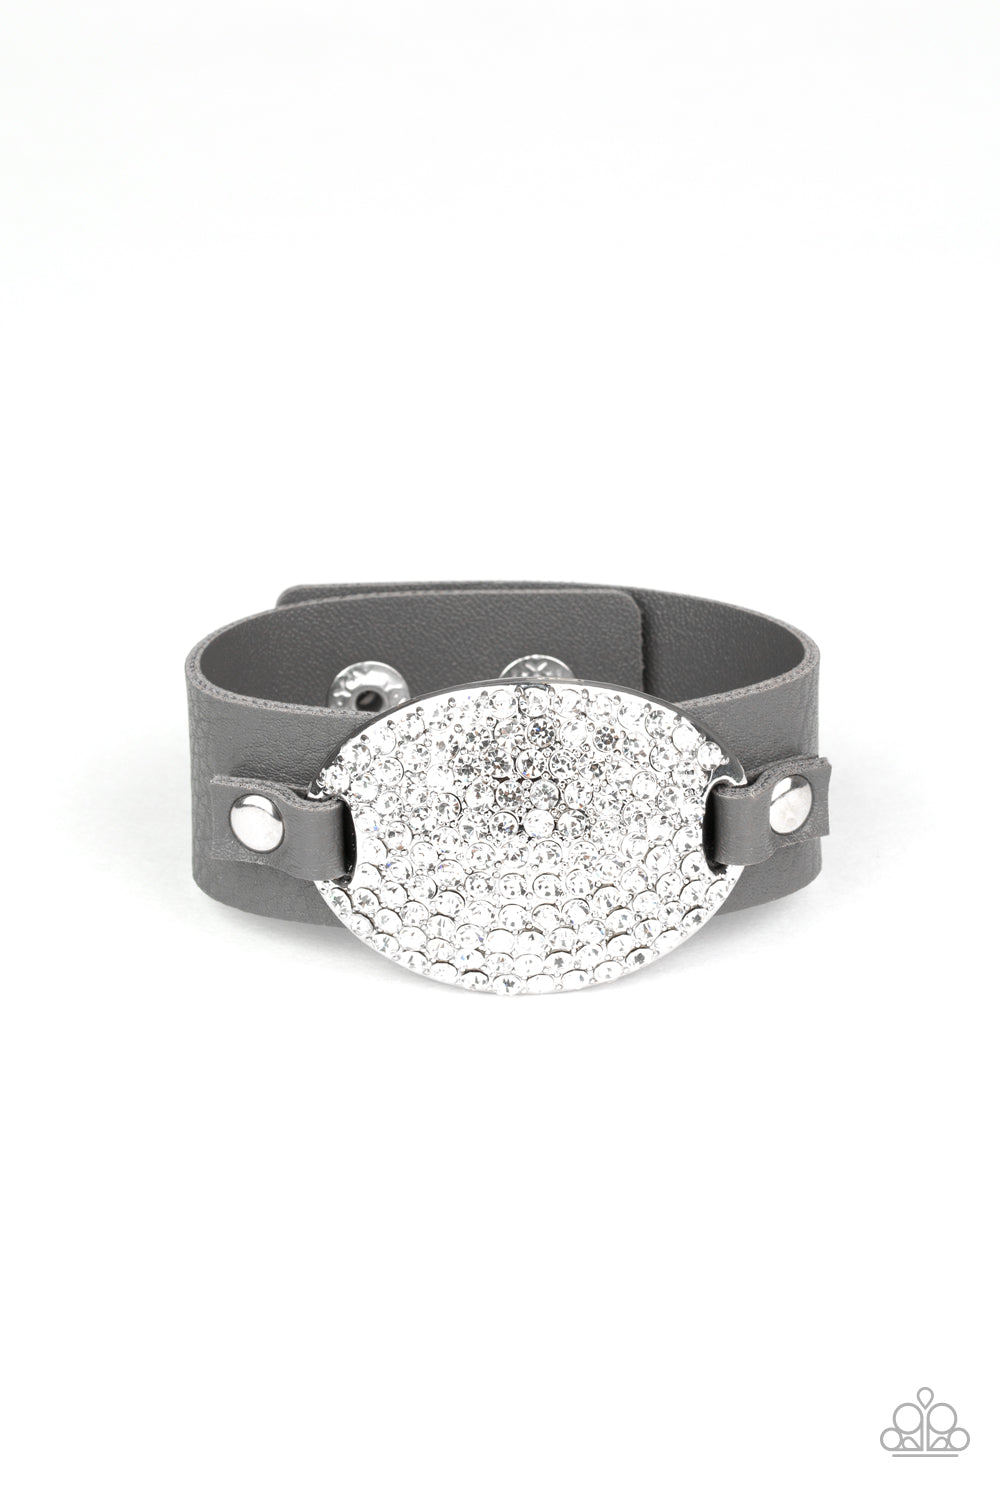 Better Recognize - Silver Paparazzi Jewelry Bracelet